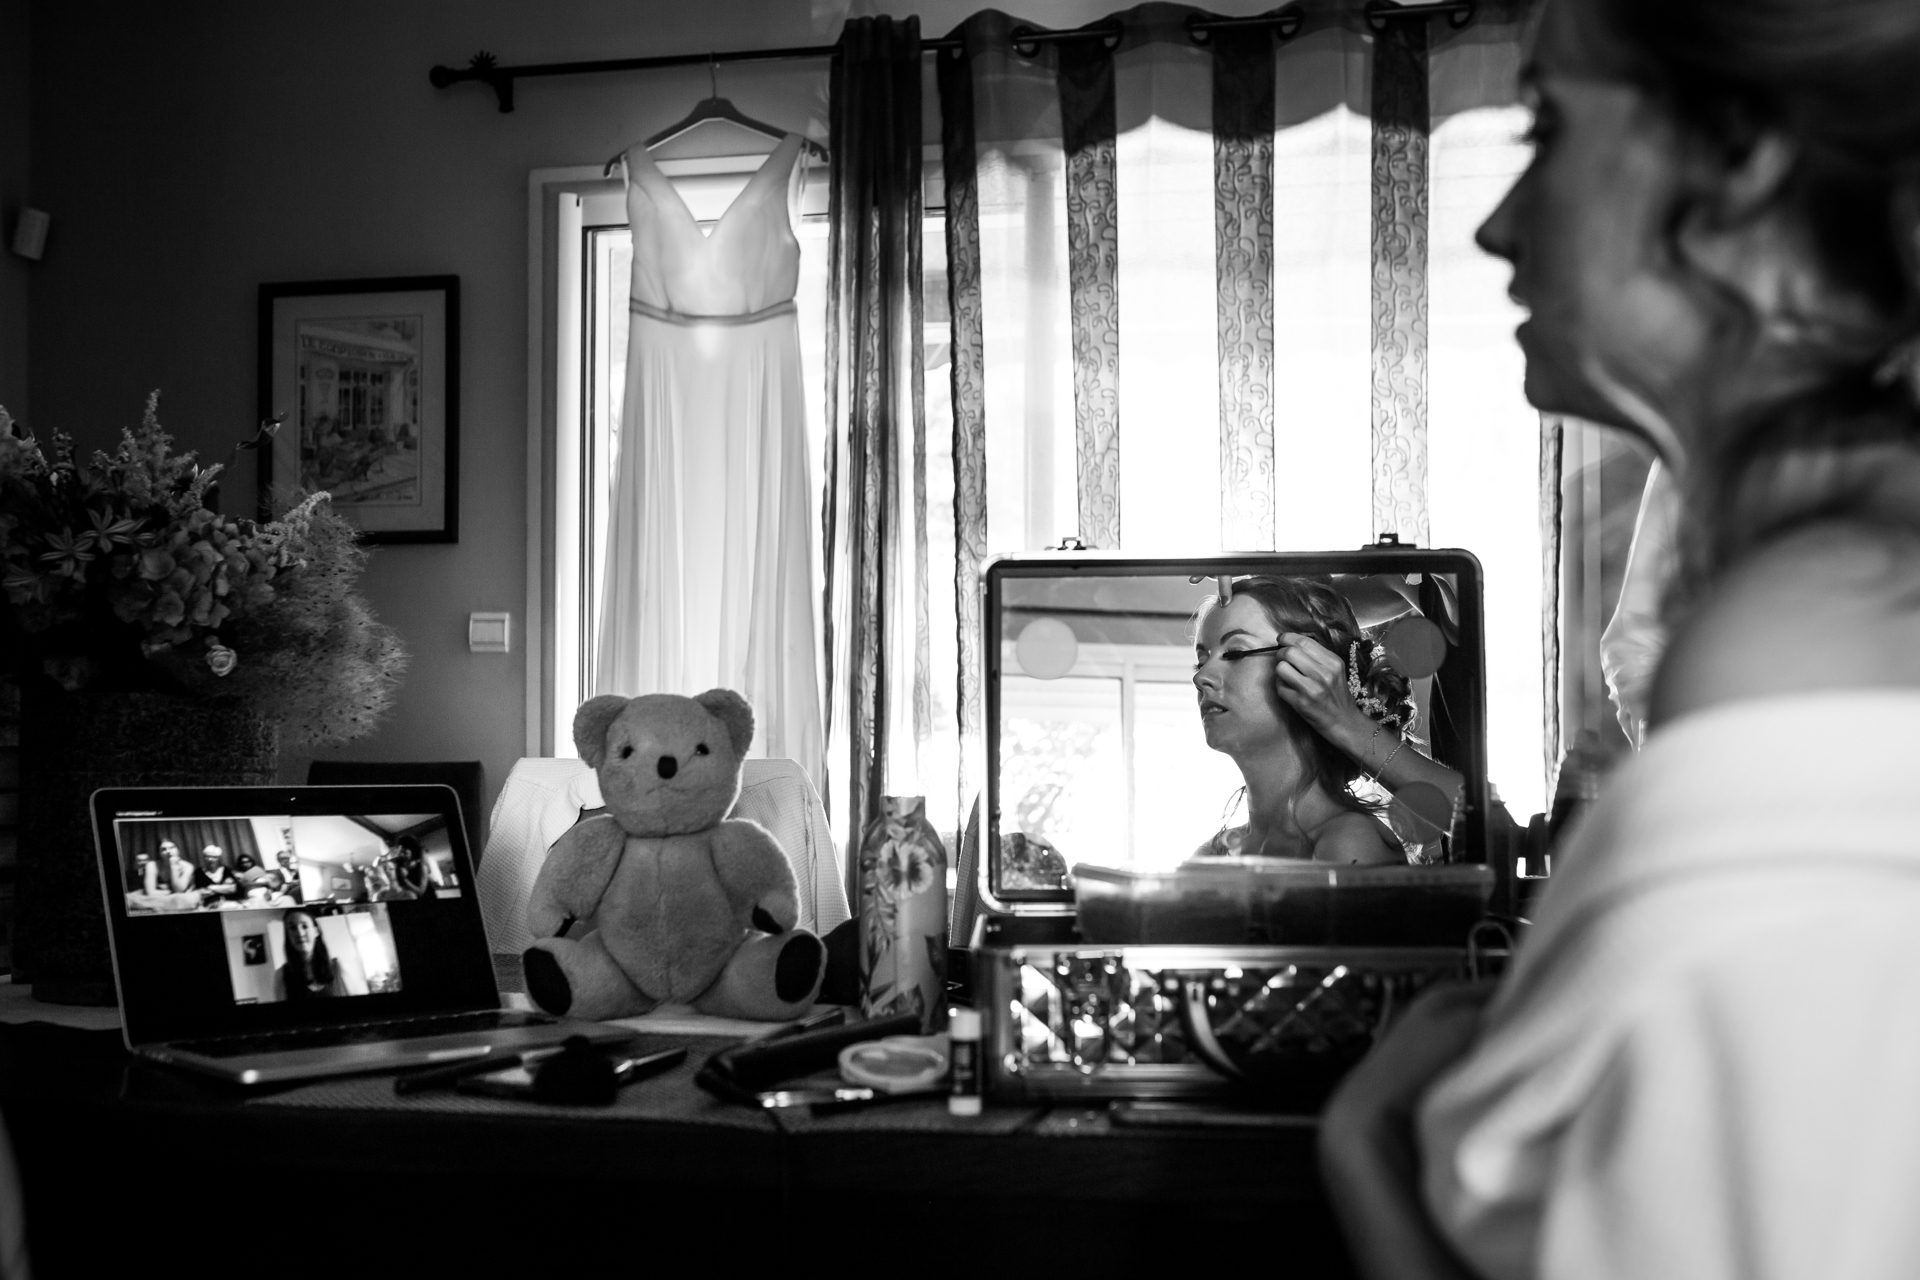 Albi Elopement Photography - France | With her childhood teddy bear looking on, the bride gets ready for the ceremony